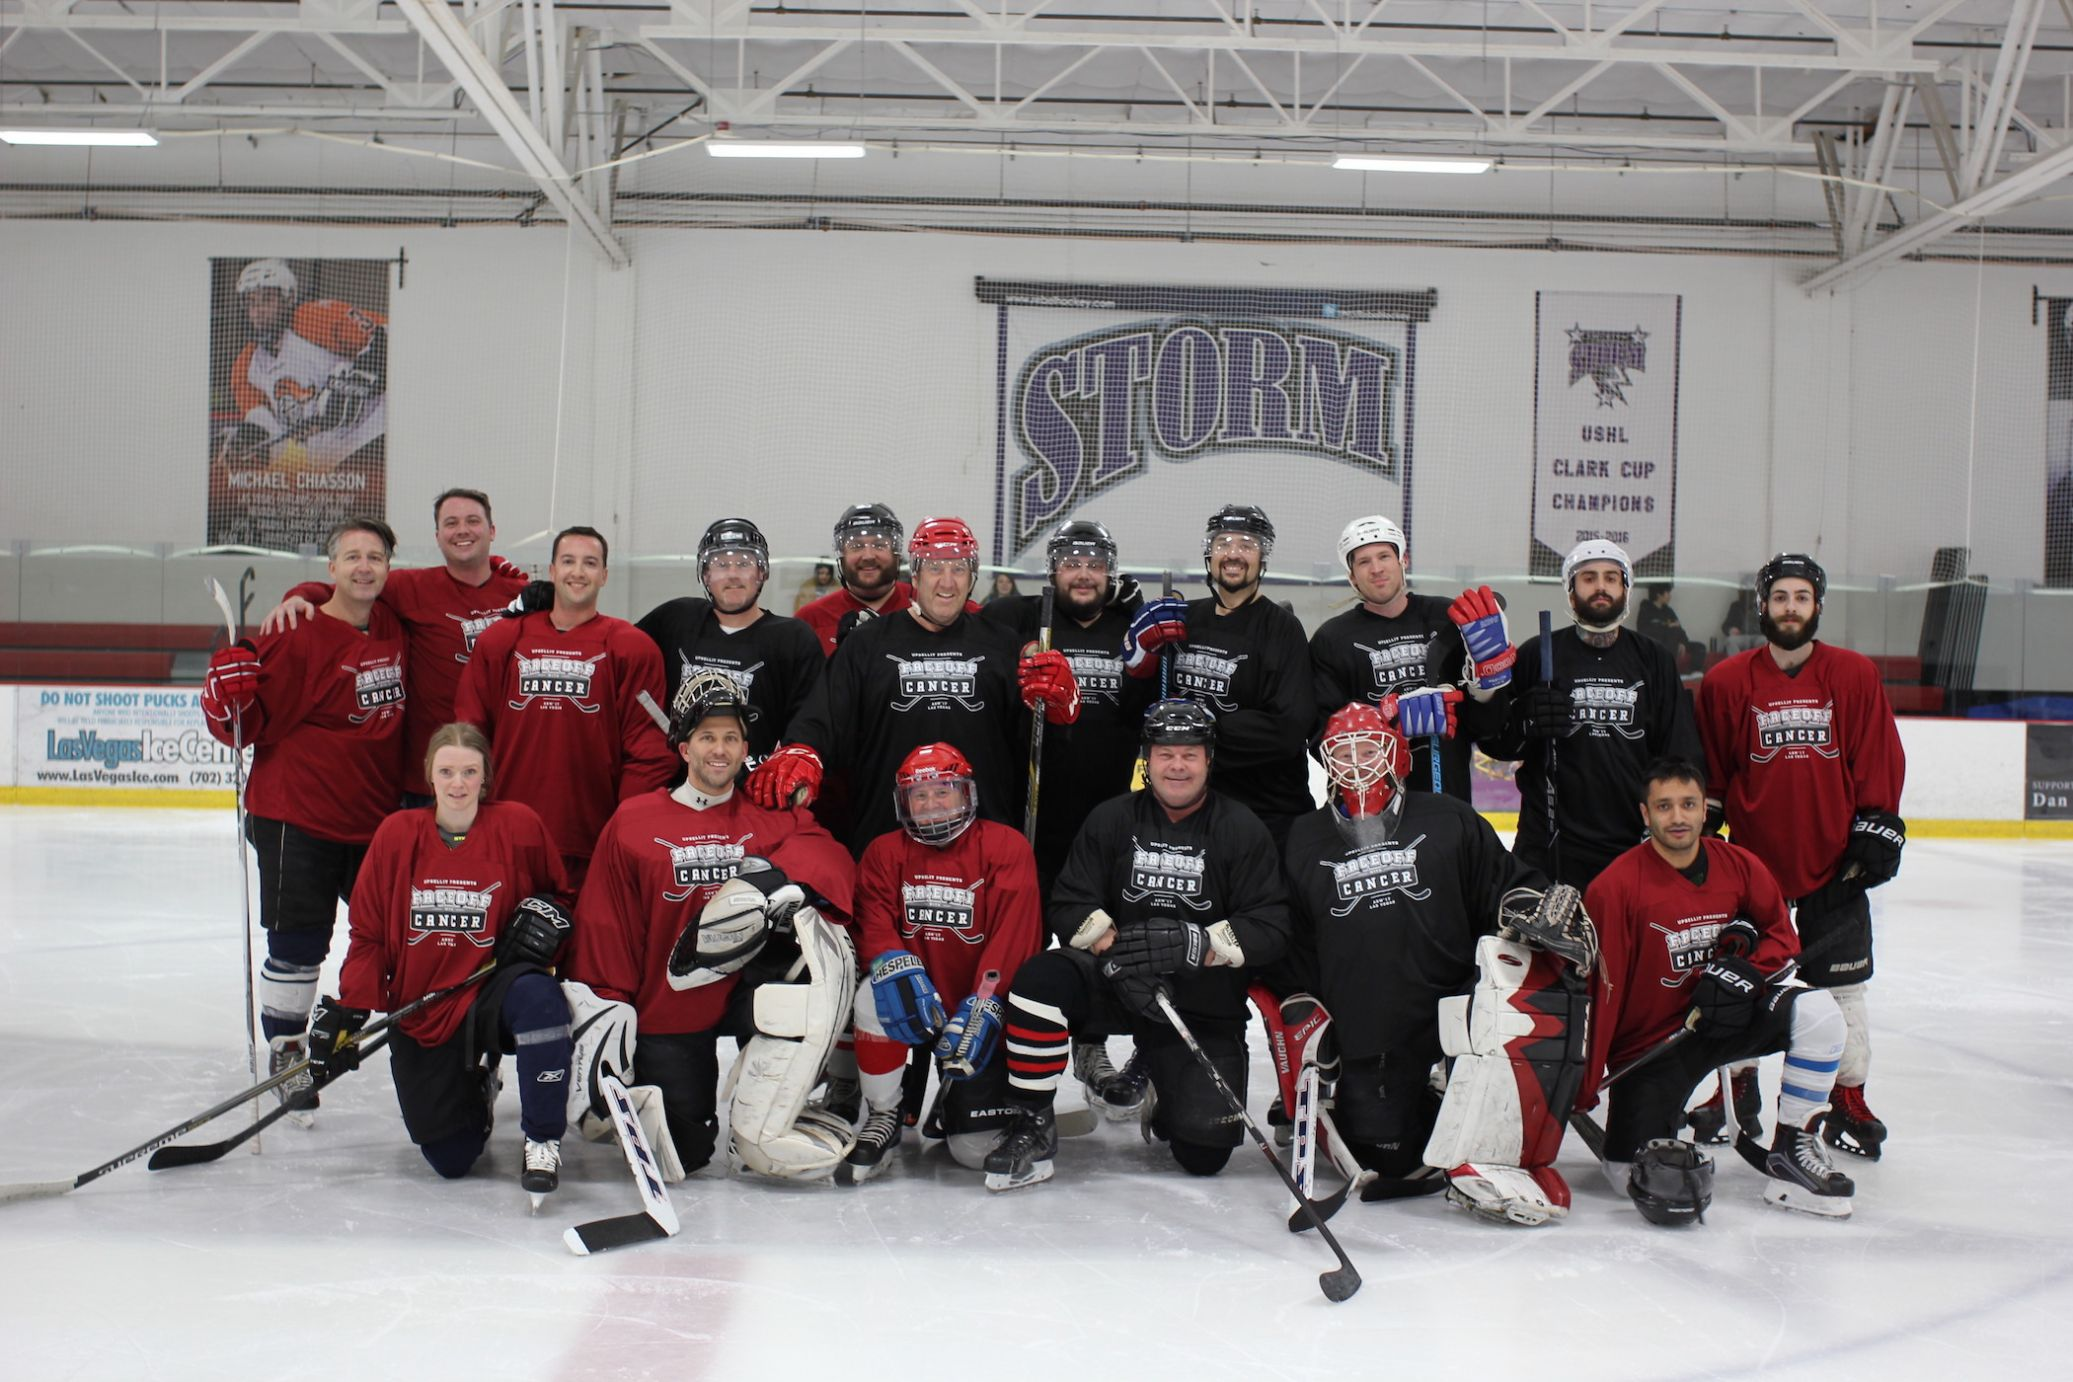 UpSellit's first annual charity hockey game gives over $10K to cancer community.